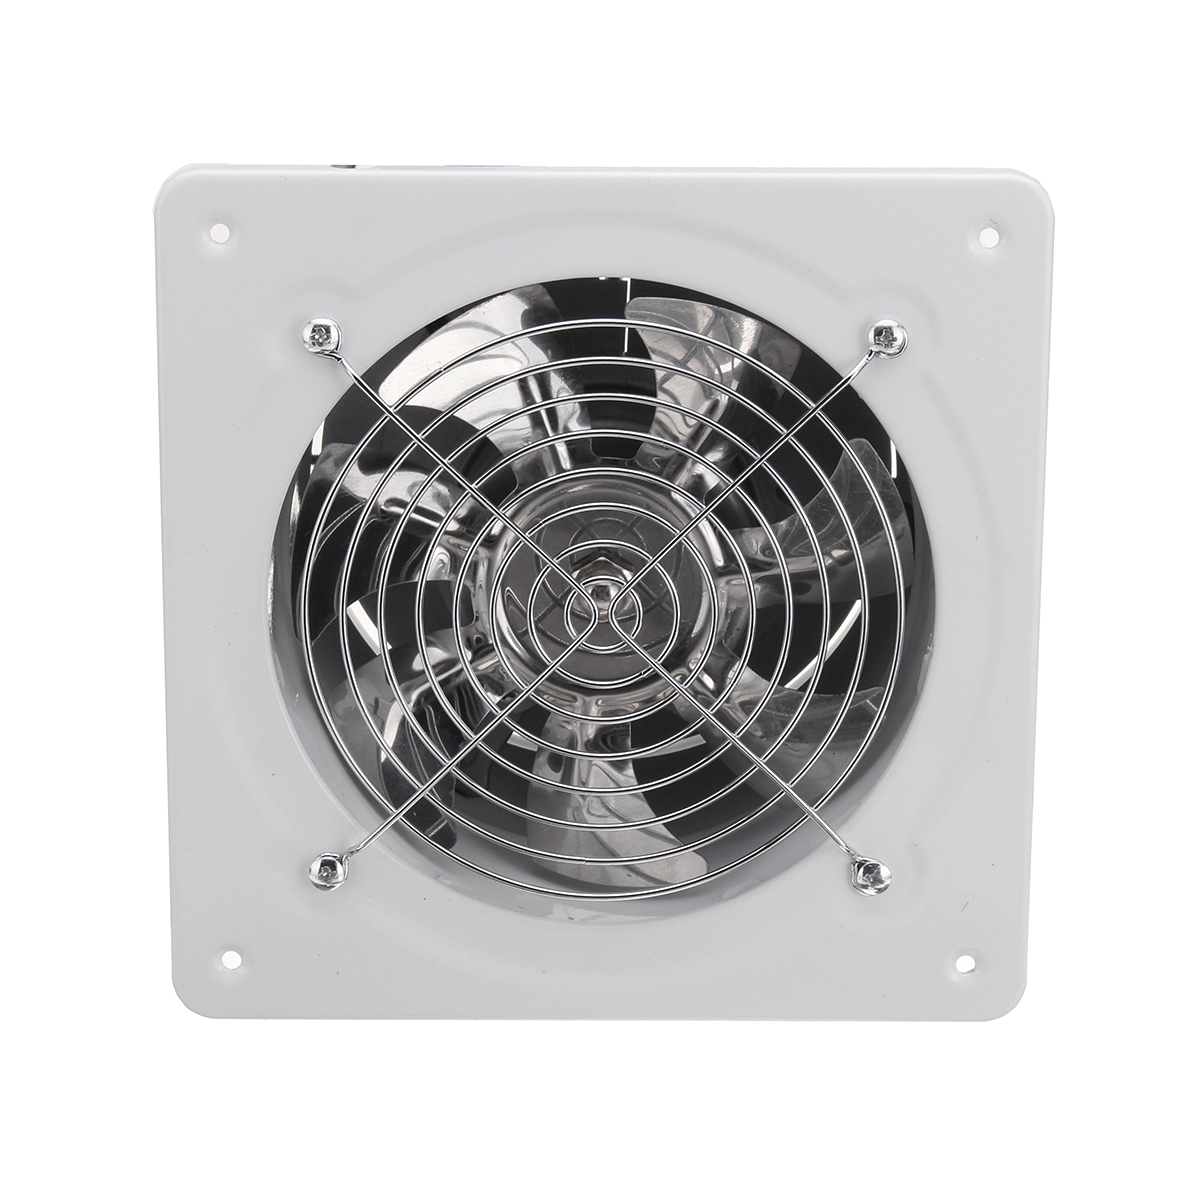 6 Duct Fan Extractor : Inch w inline duct booster fan extractor exhaust and